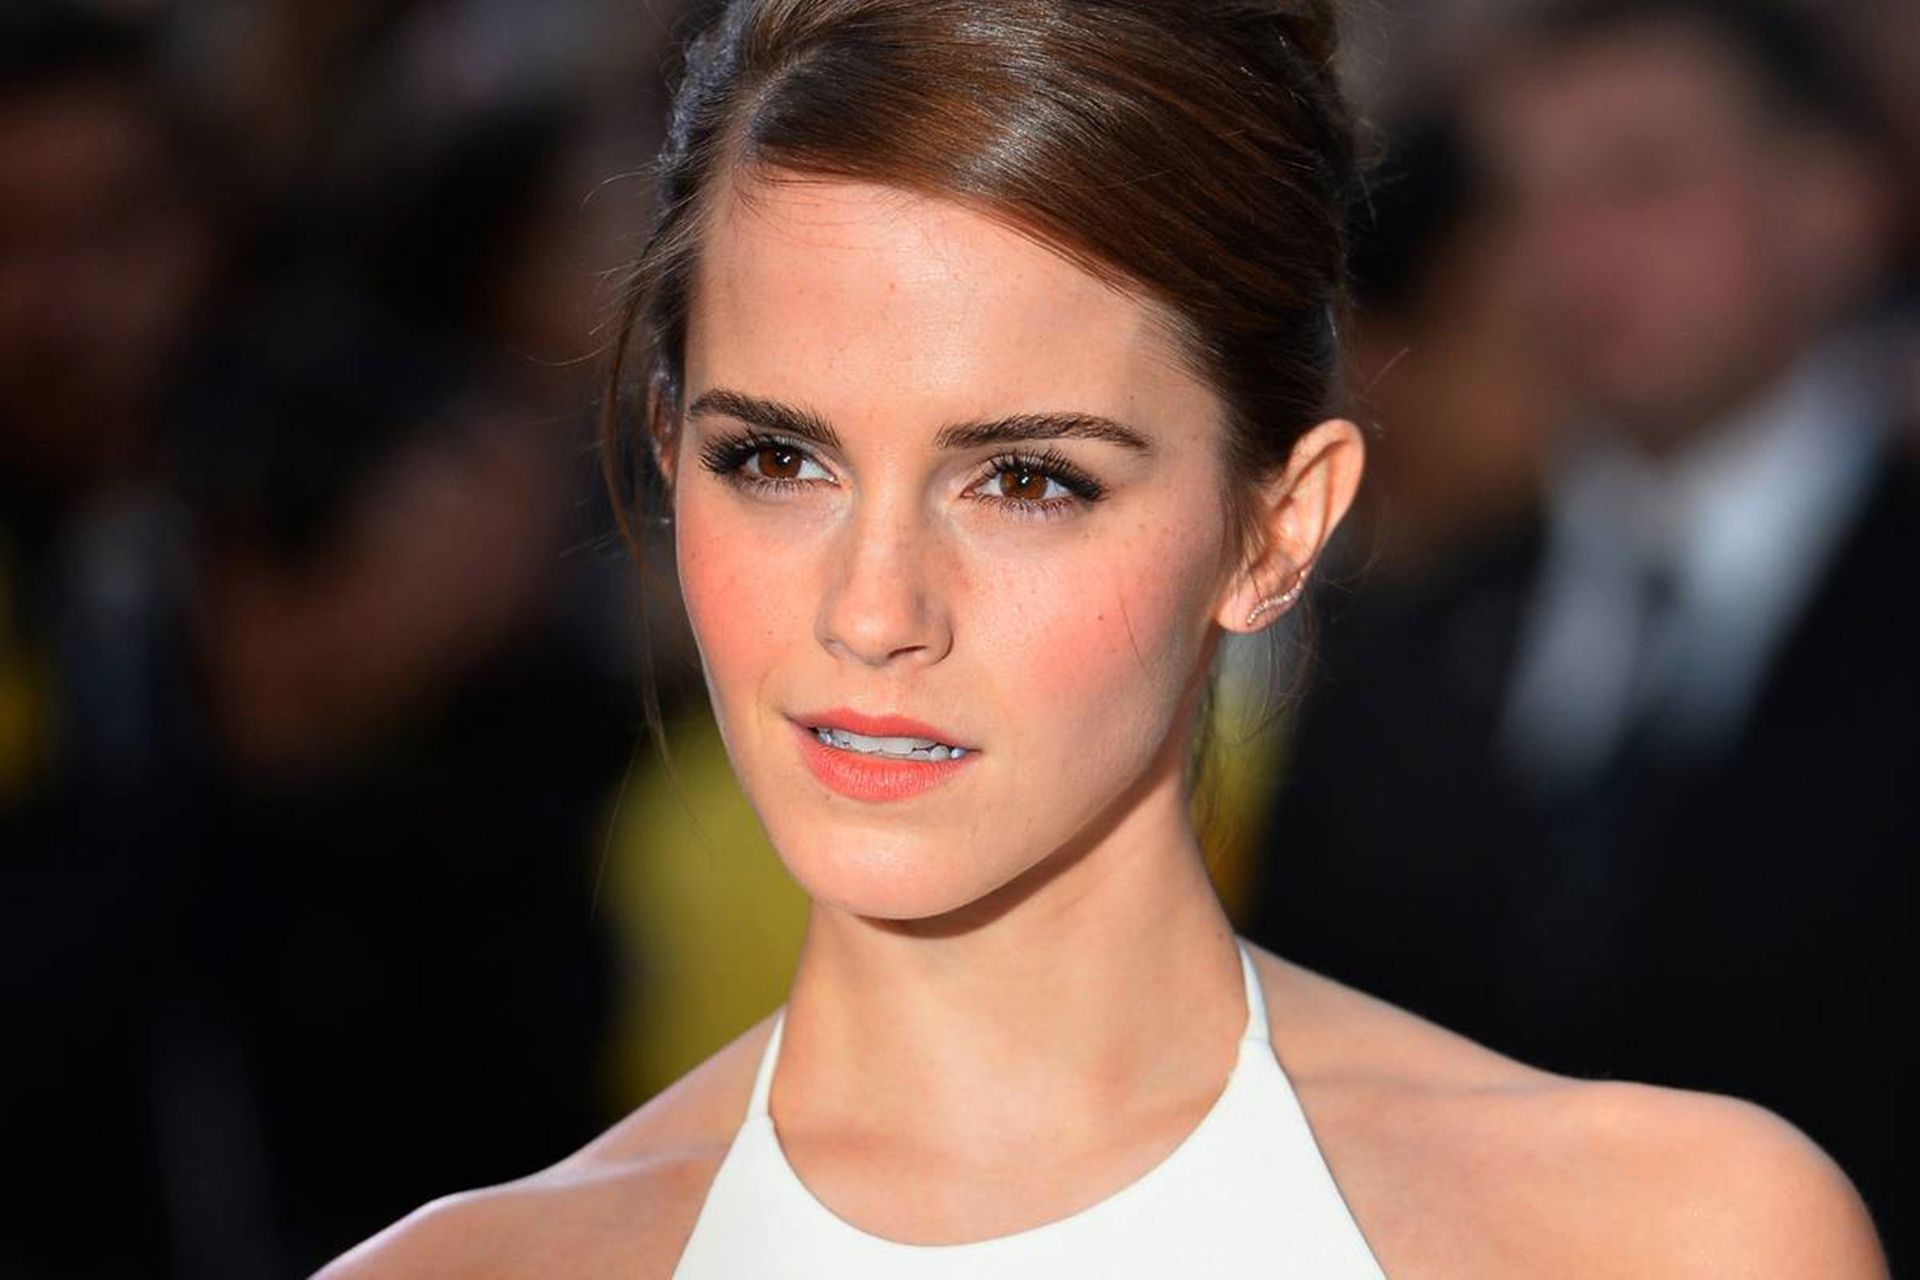 Emma Watson tells us how to view barriers - The Business Woman Media Emma Watson